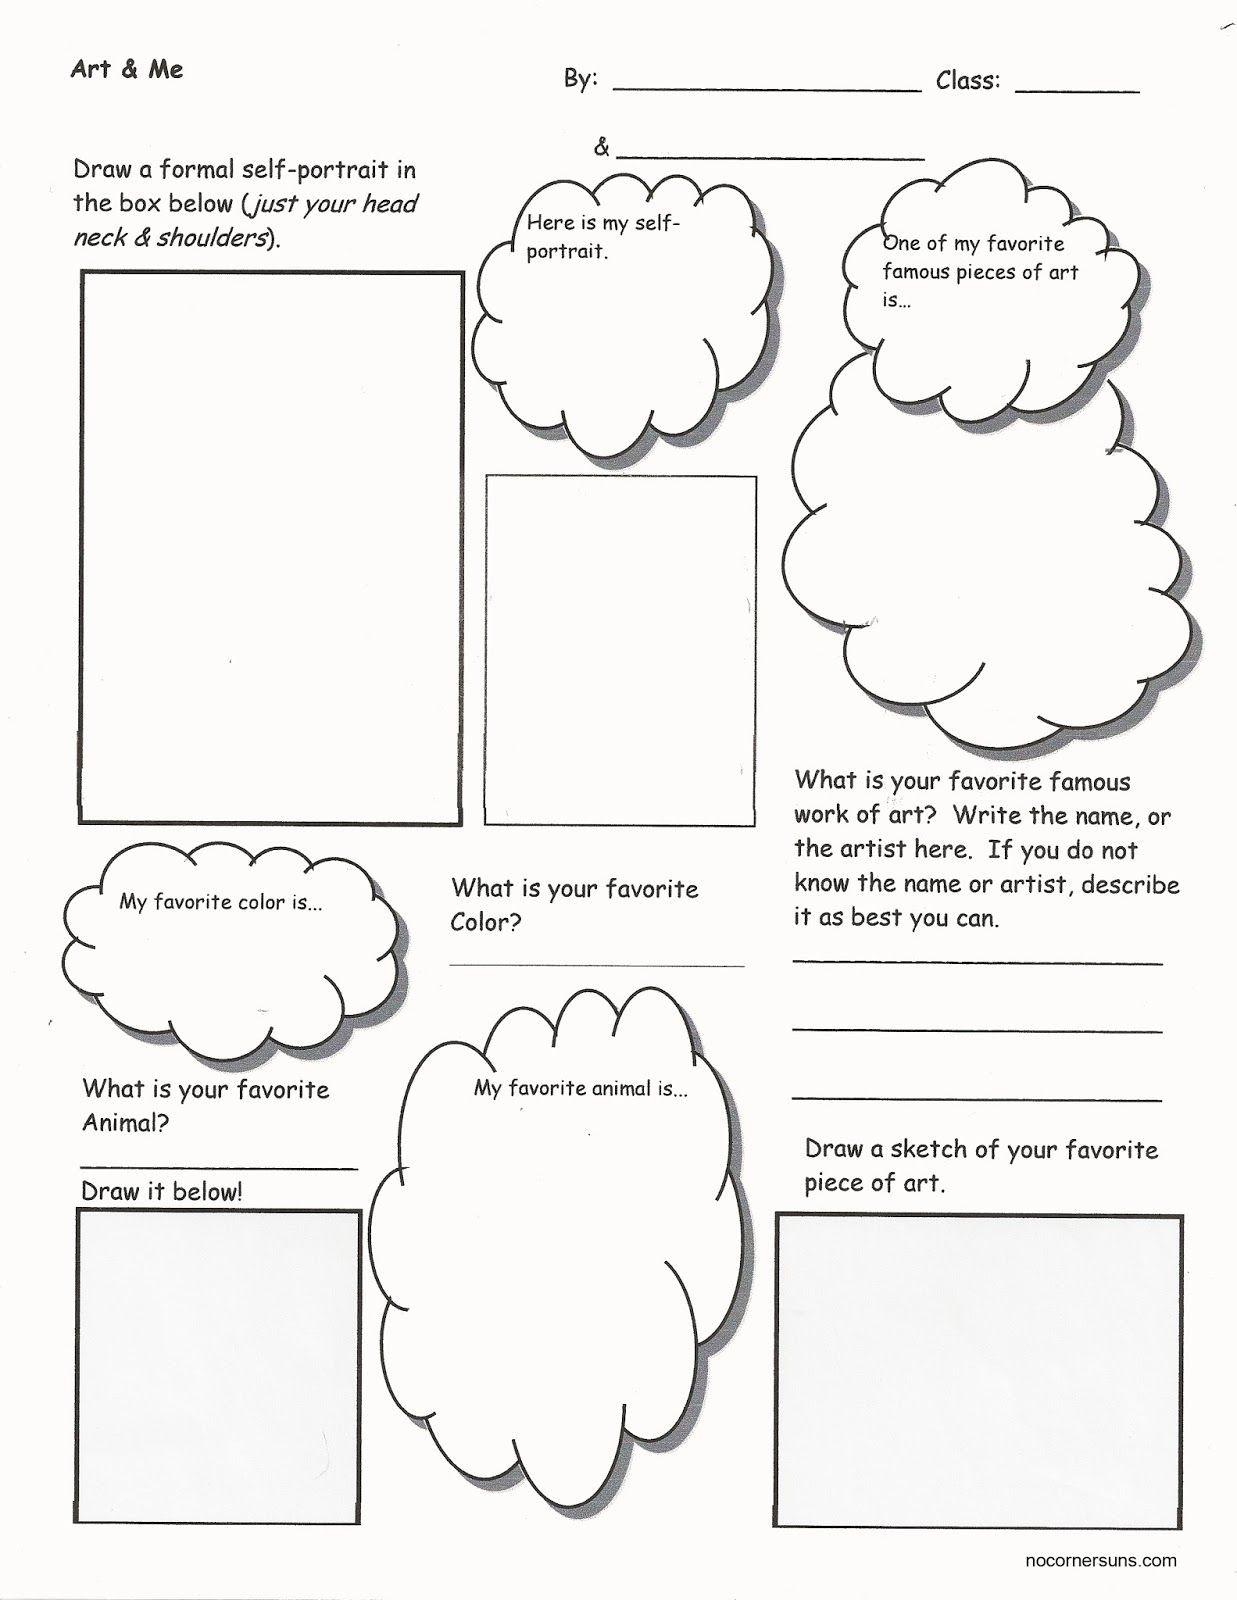 Middle School Art Worksheets Art & Me I Ting to Know You Worksheet that Helps